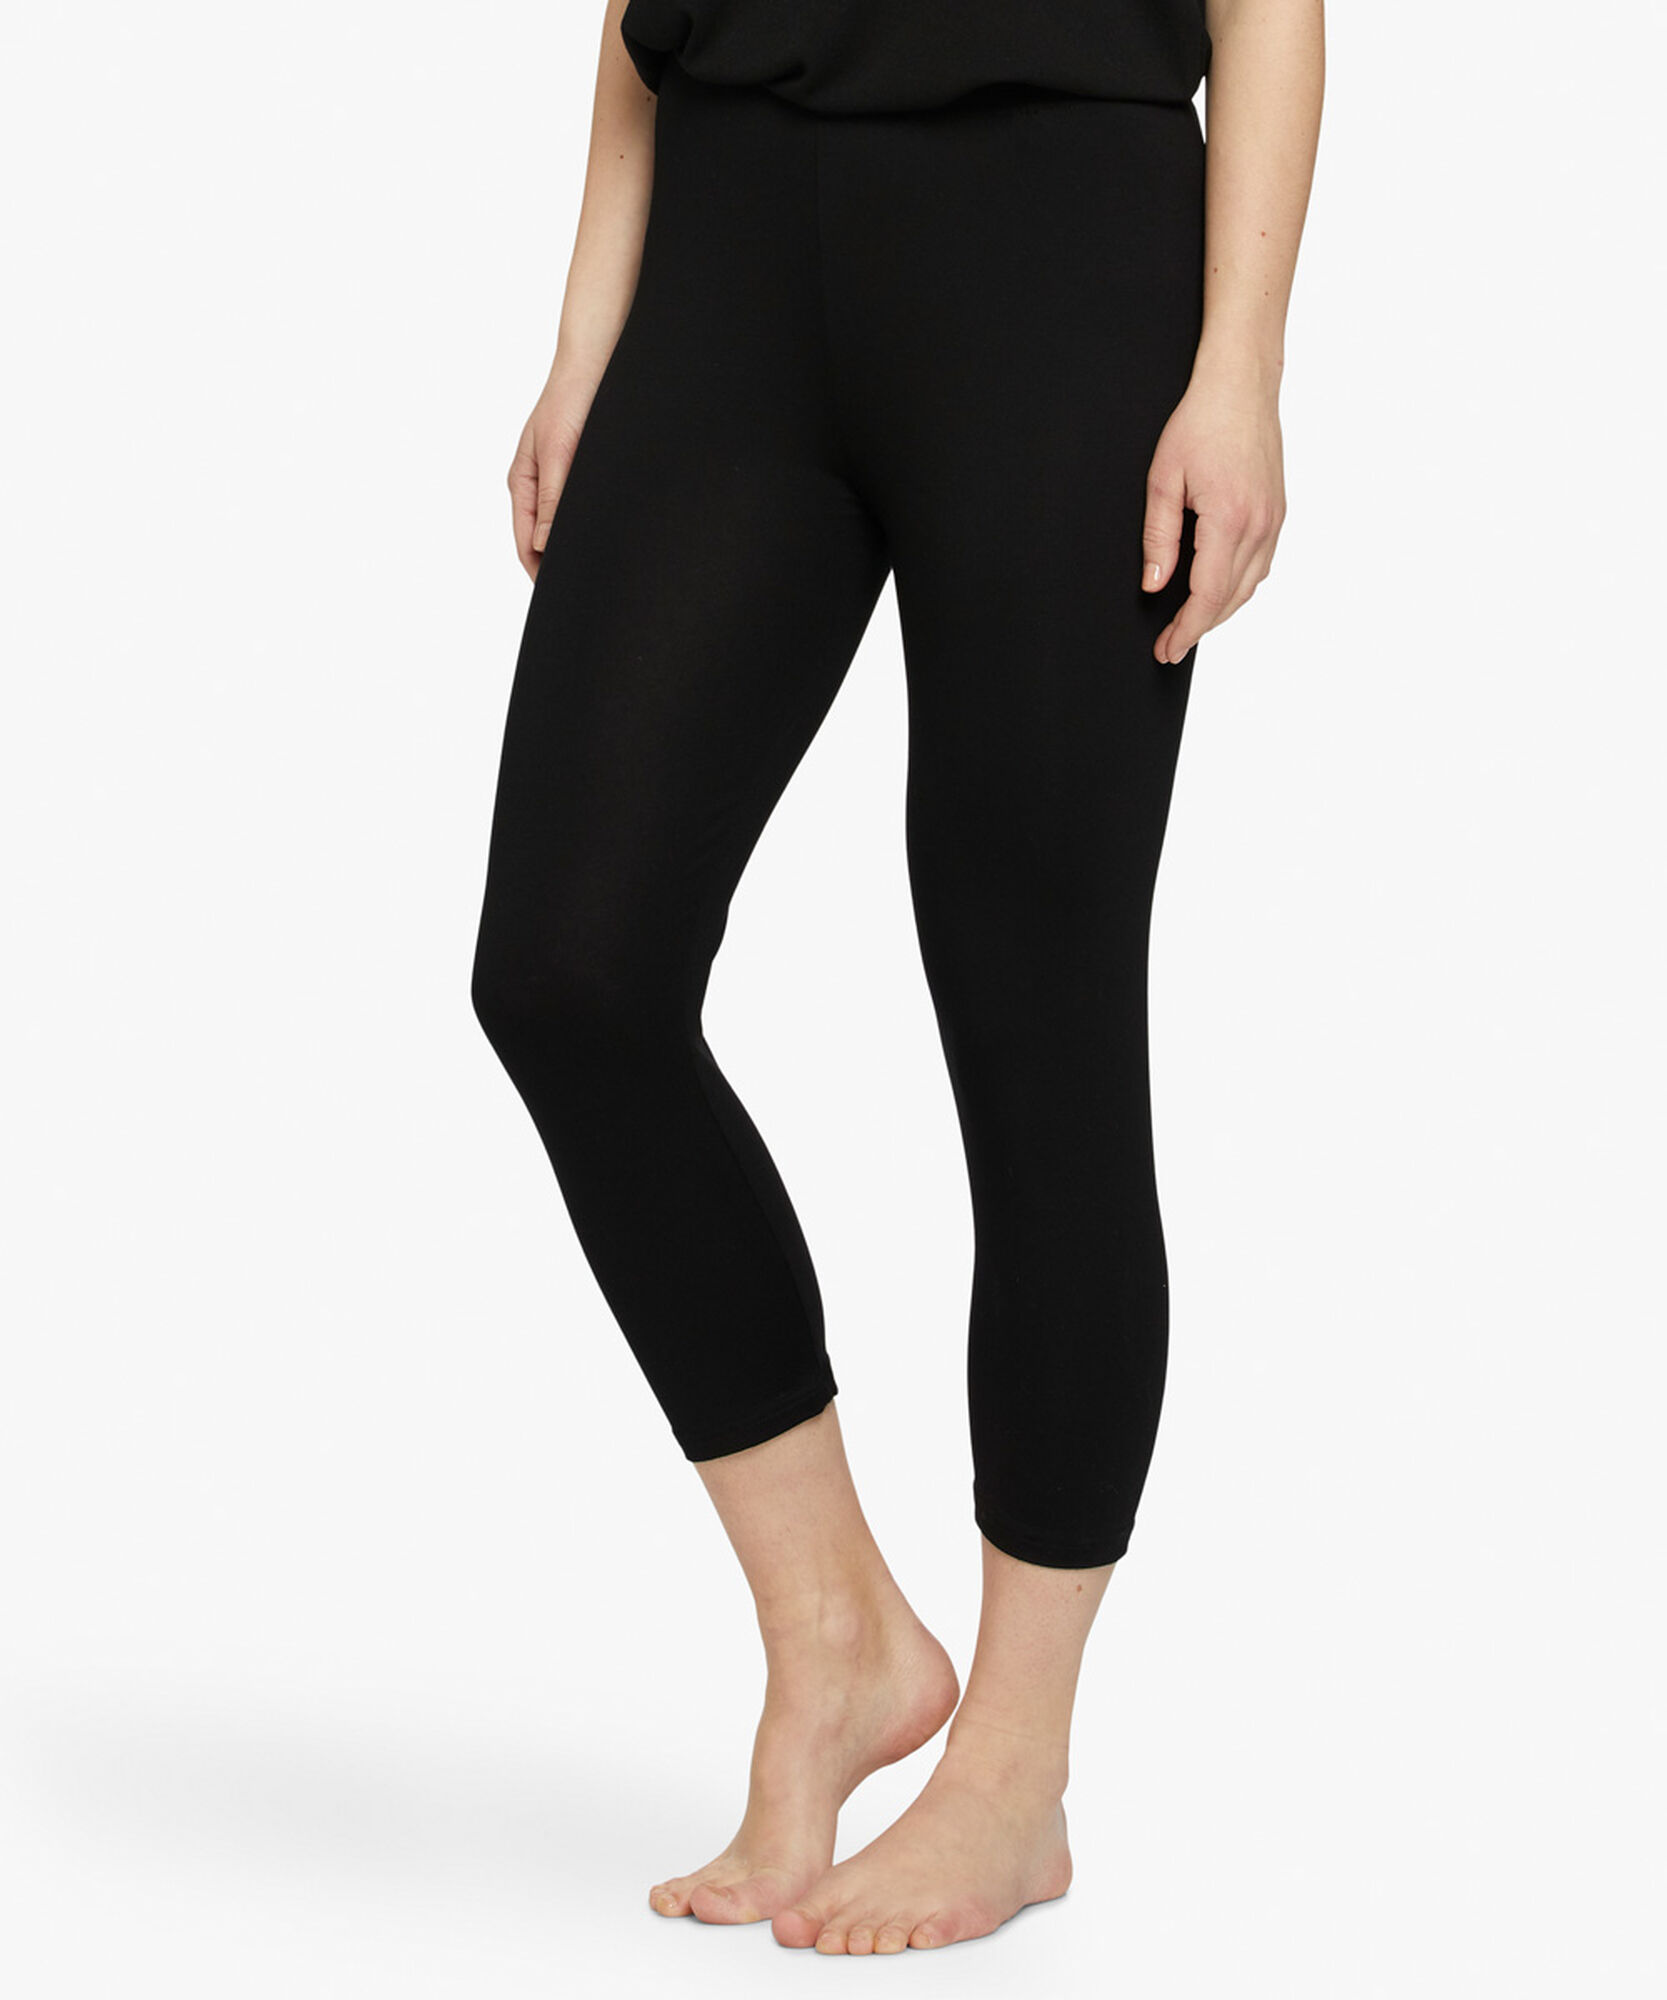 PENNIE LEGGINGS, Black, hi-res